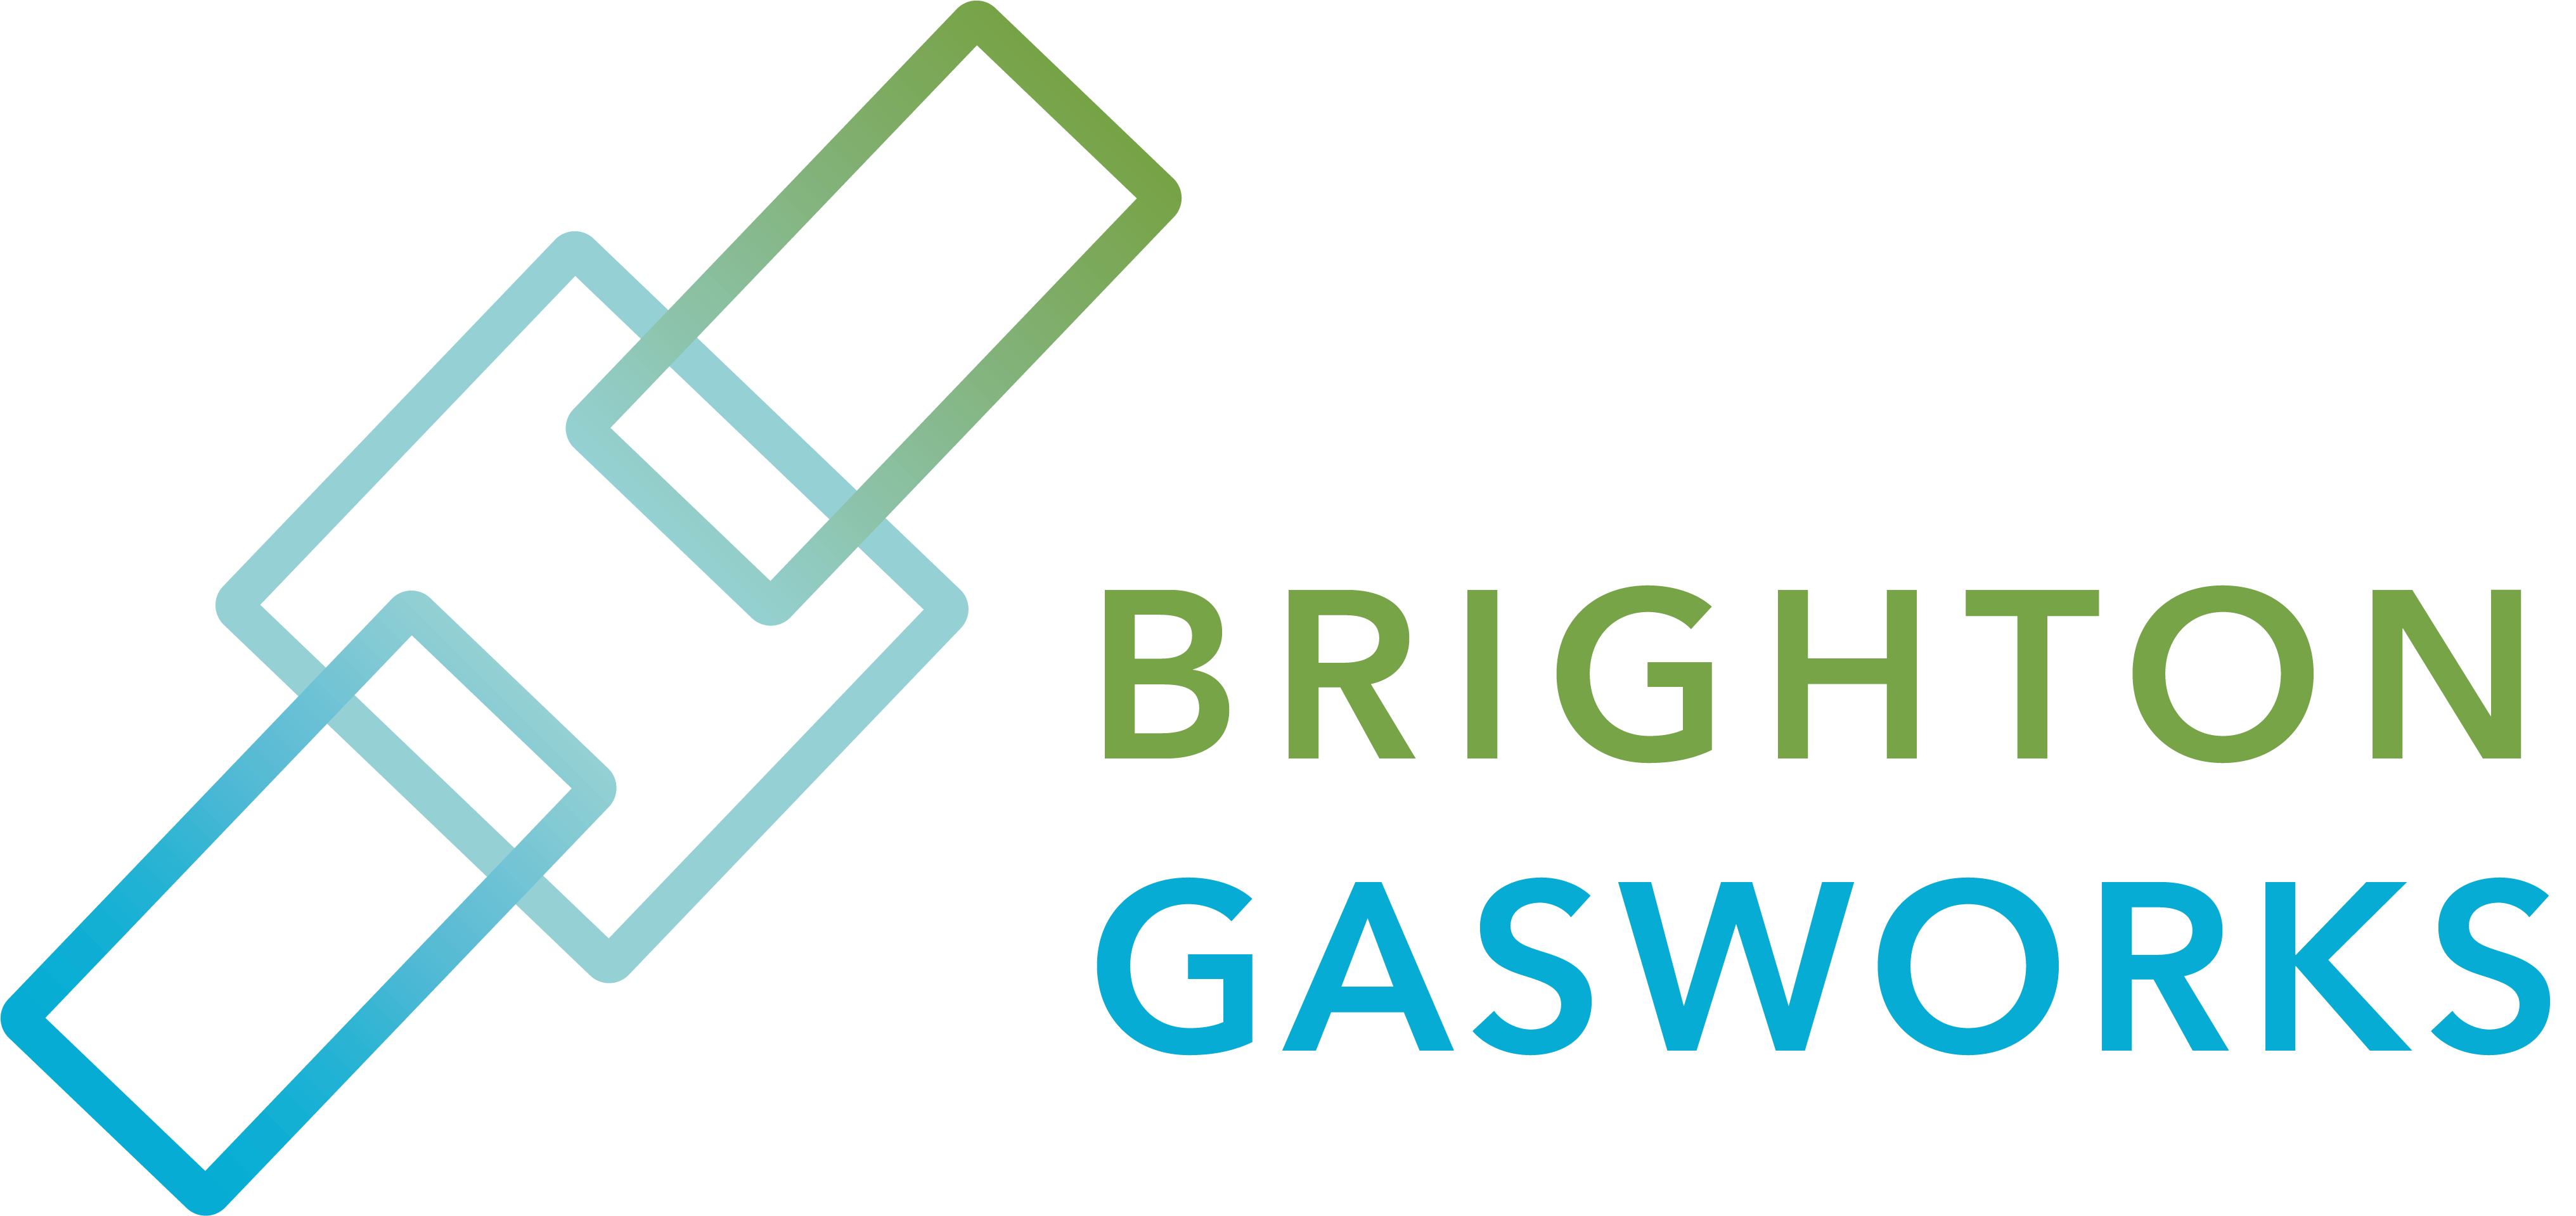 Brighton Gasworks Project